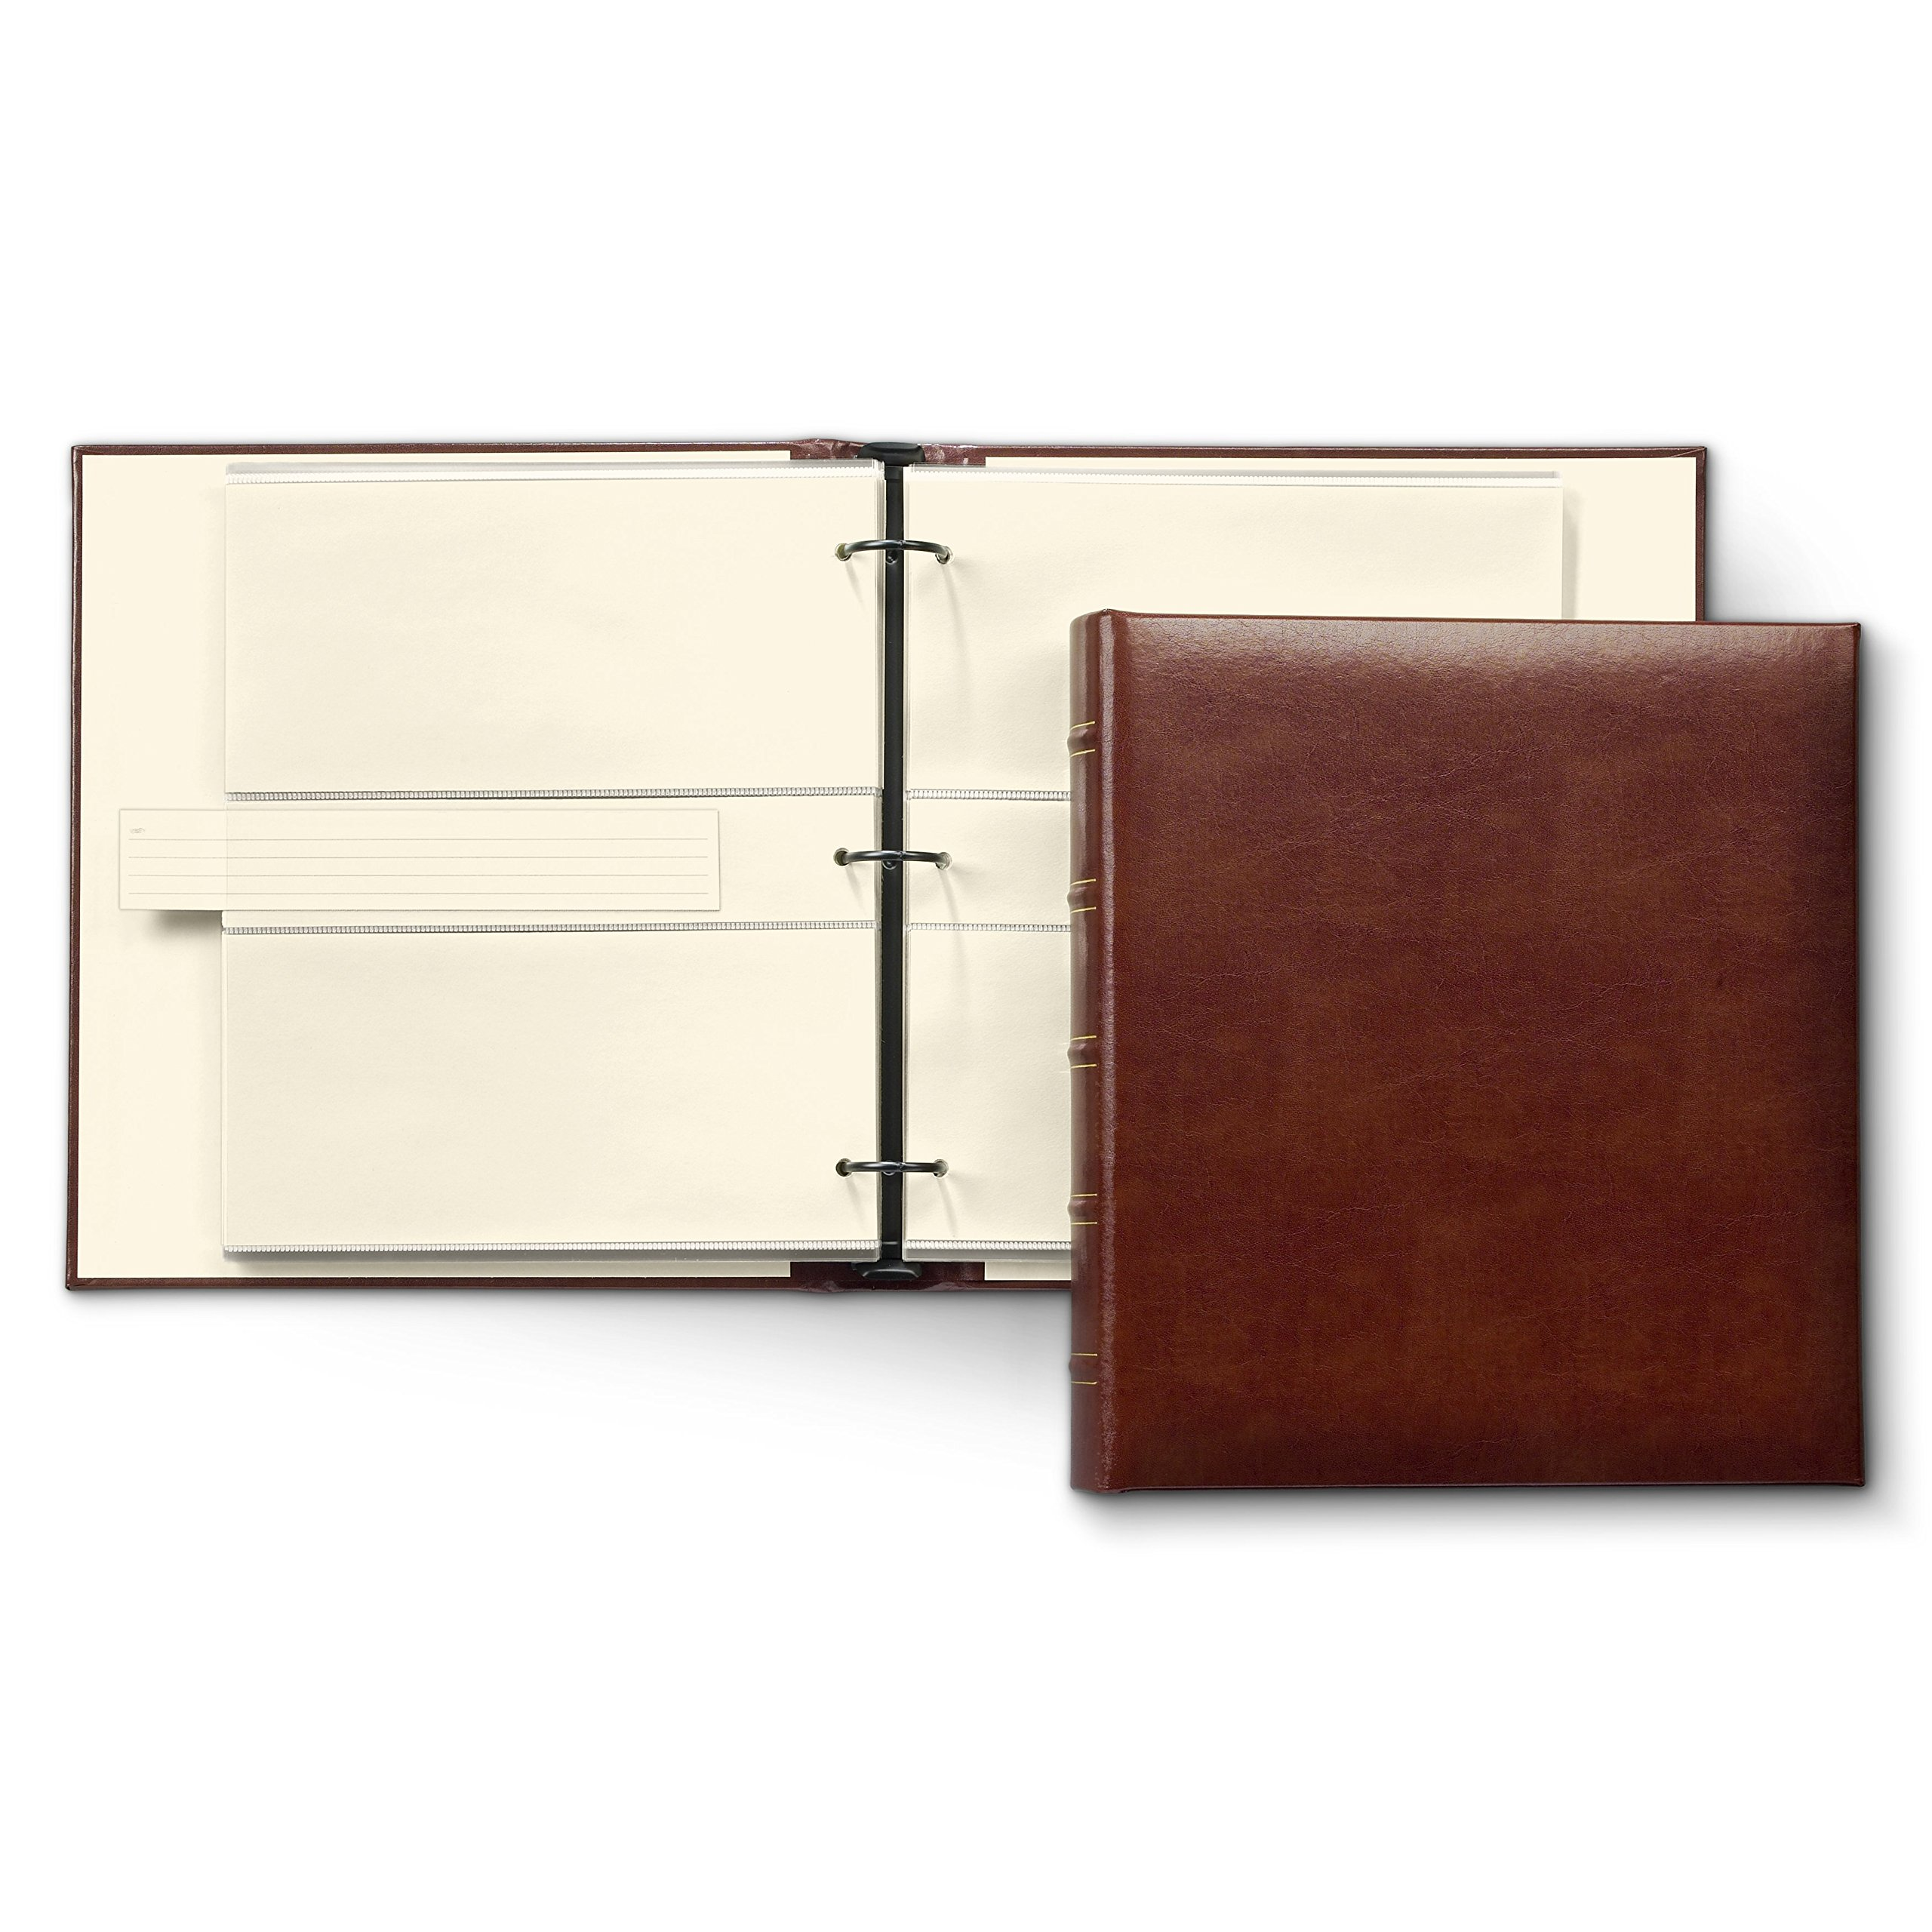 Gallery Leather Classic  Leather Album, British Tan by Gallery Leather (Image #2)